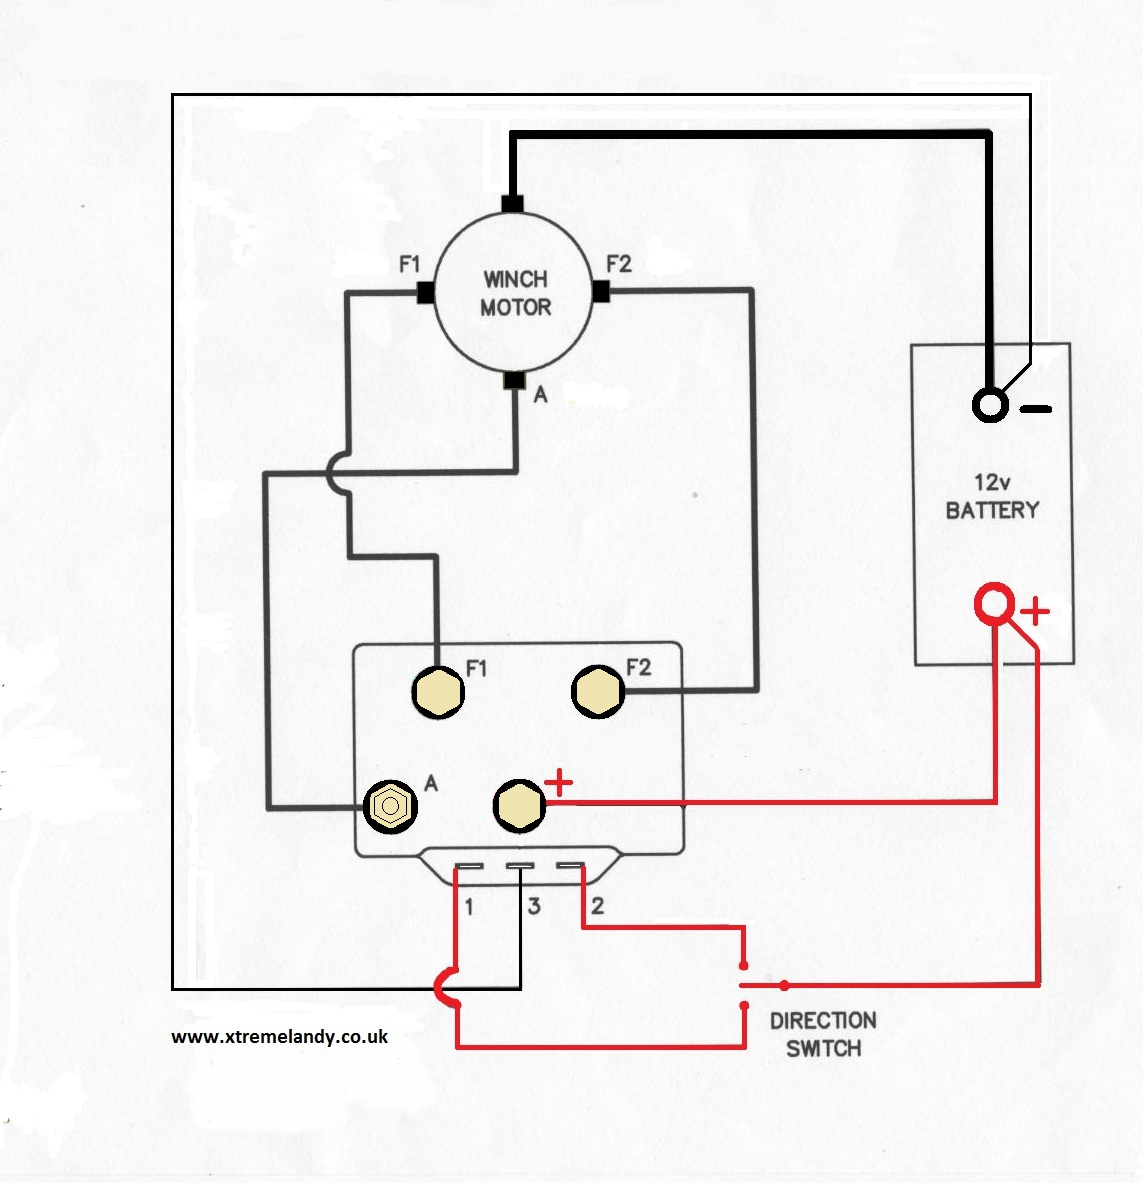 albright wiring diagram image warn x8000i solenoid wiring diagram winch solenoid diagram wiring warn x8000i wiring diagram at mifinder.co